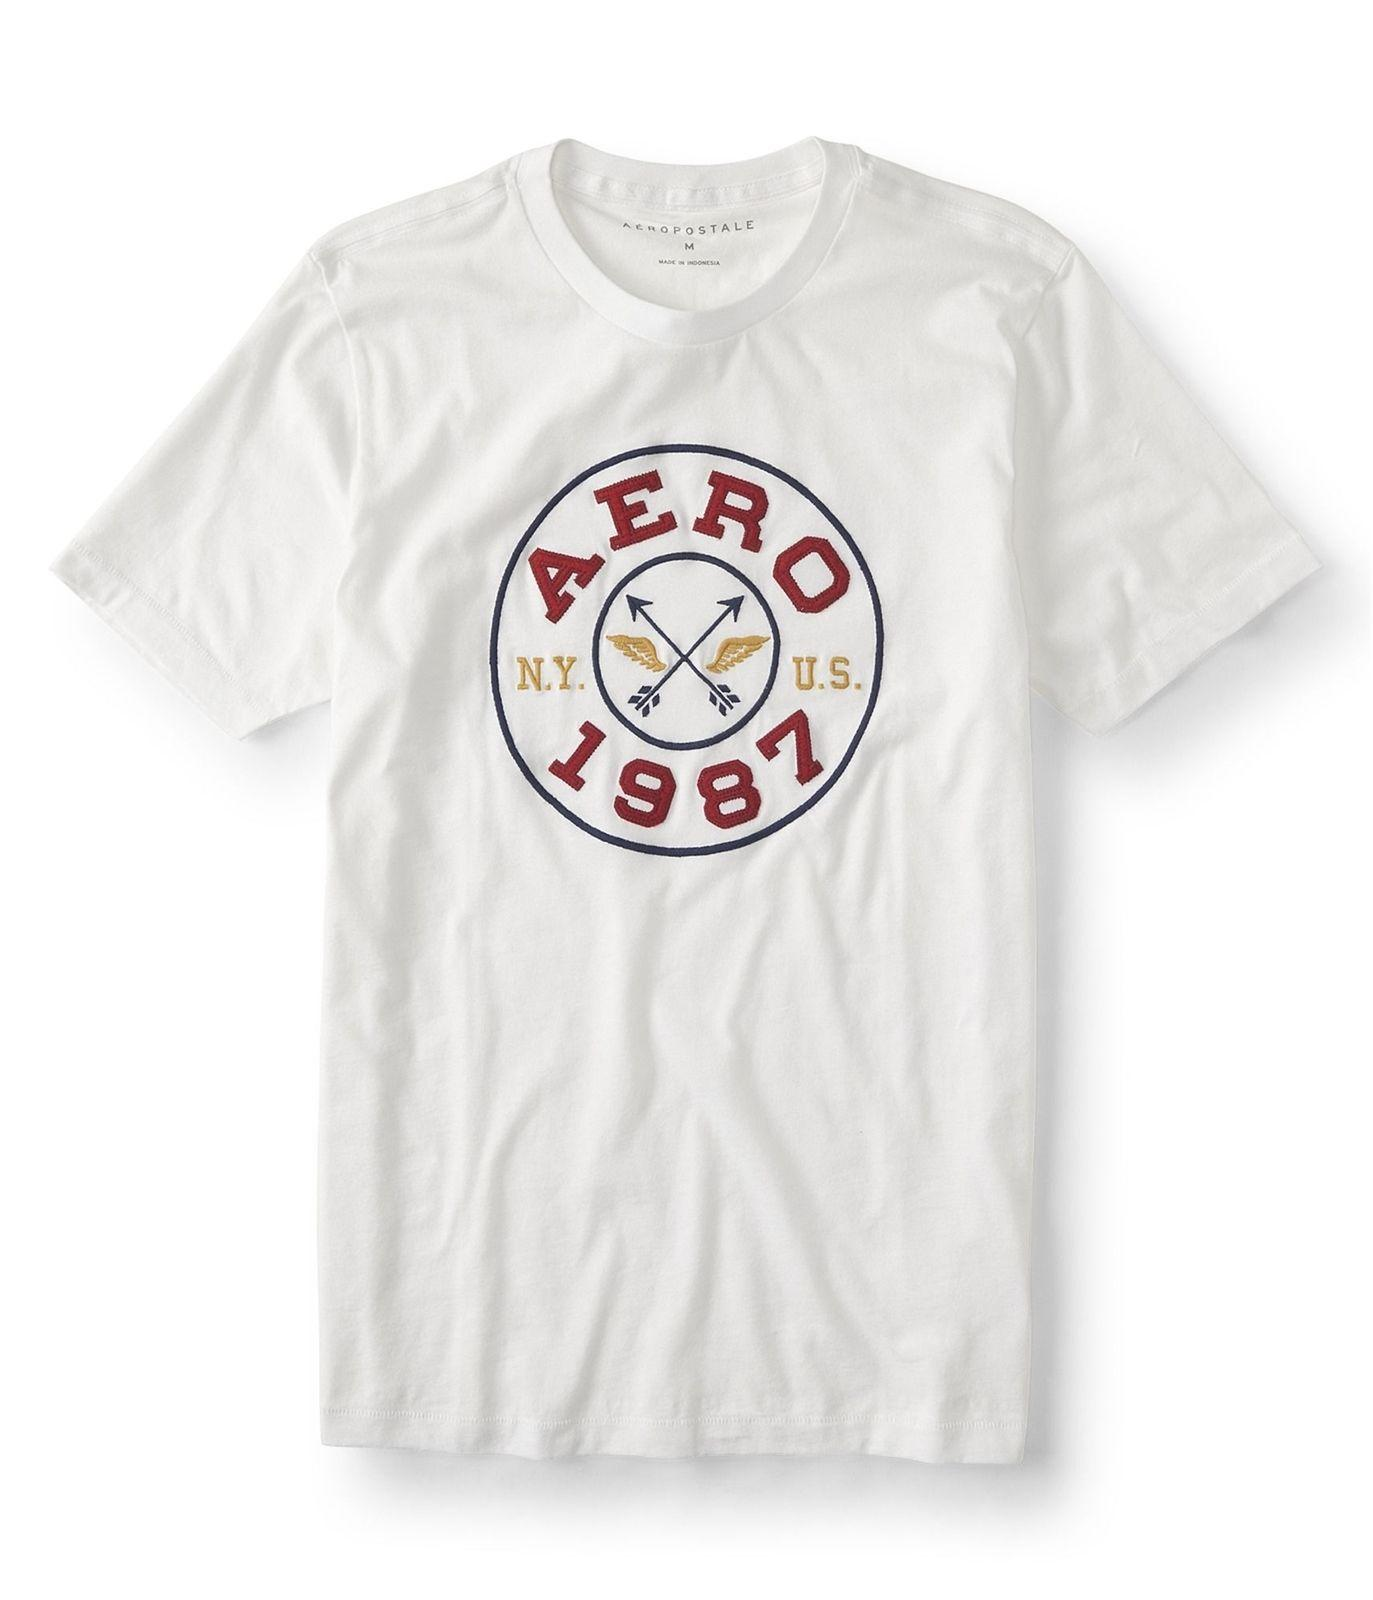 16939c40c71a Aeropostale Mens 1987 Circle Graphic T Shirt 102 M 2018 New Pure Cotton  Short Sleeves Hip Hop Fashion Mens T Shirt Funny T Shirts For Men Make T  Shirts From ...